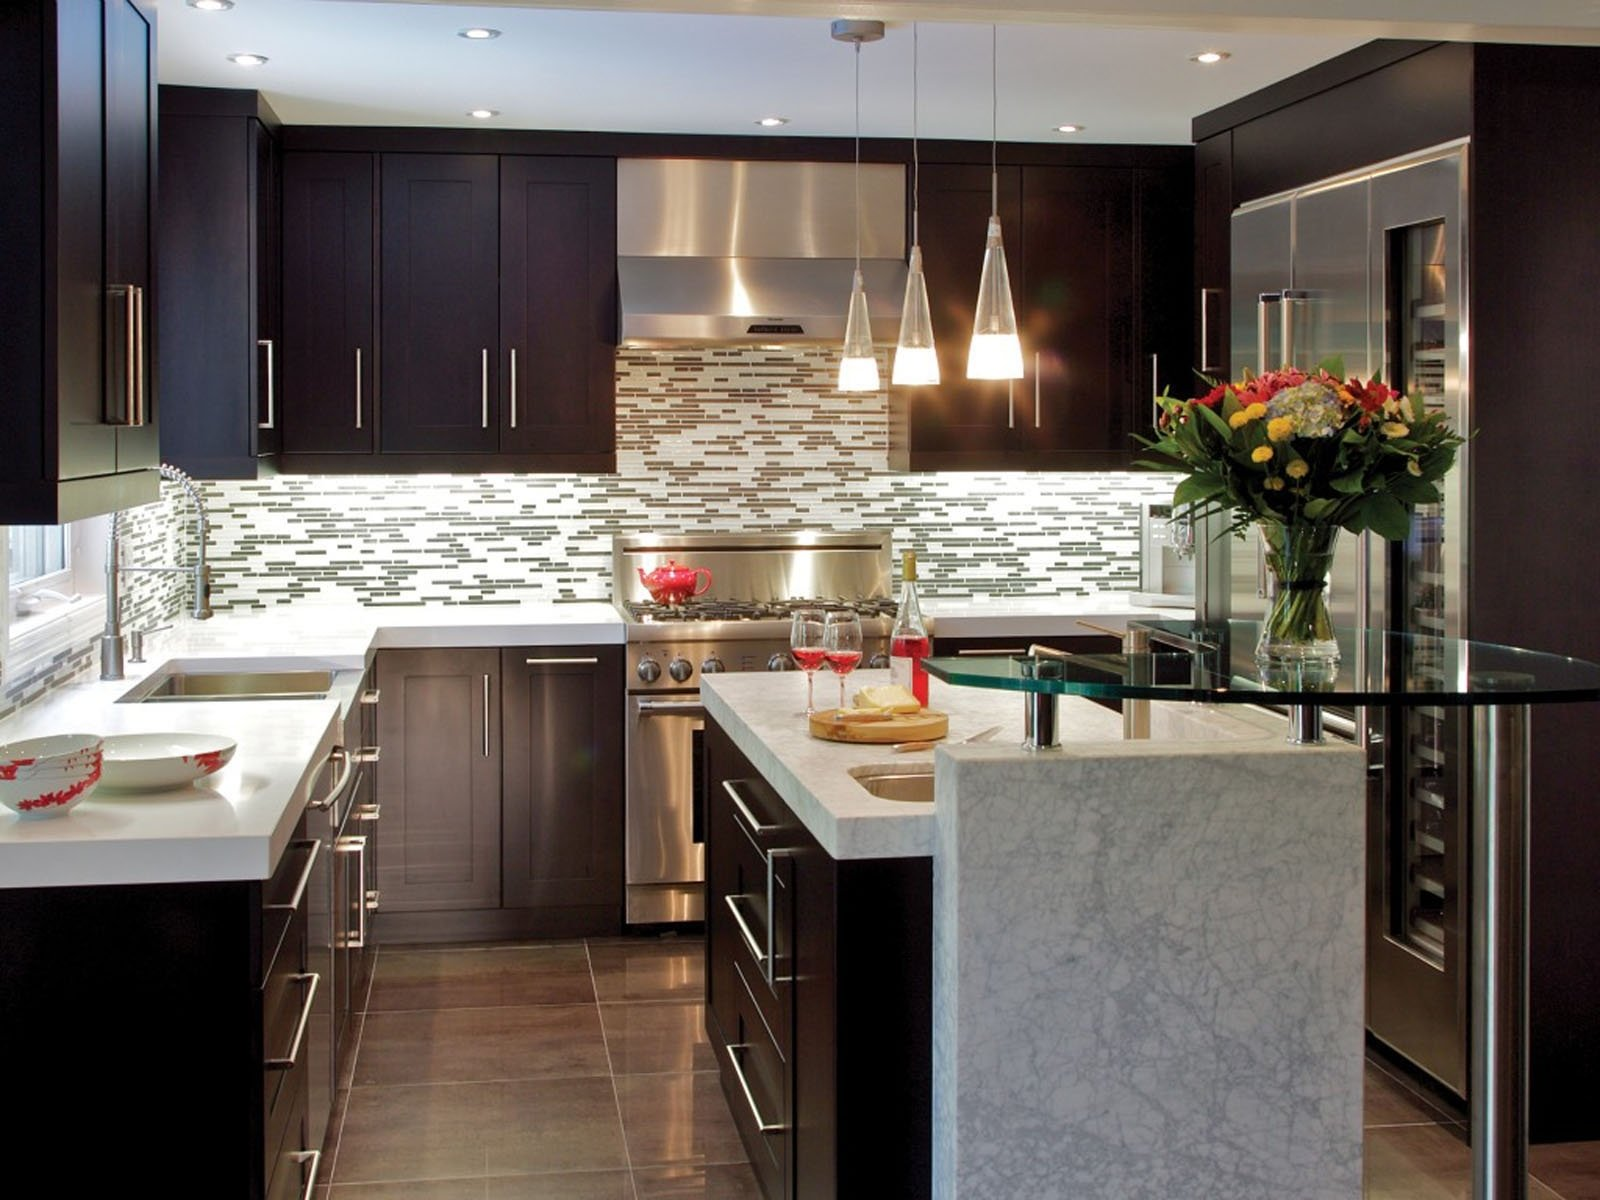 10 Unique Small U Shaped Kitchen Remodel Ideas u shaped kitchen at com inspiring small gallery and remodel ideas 2021